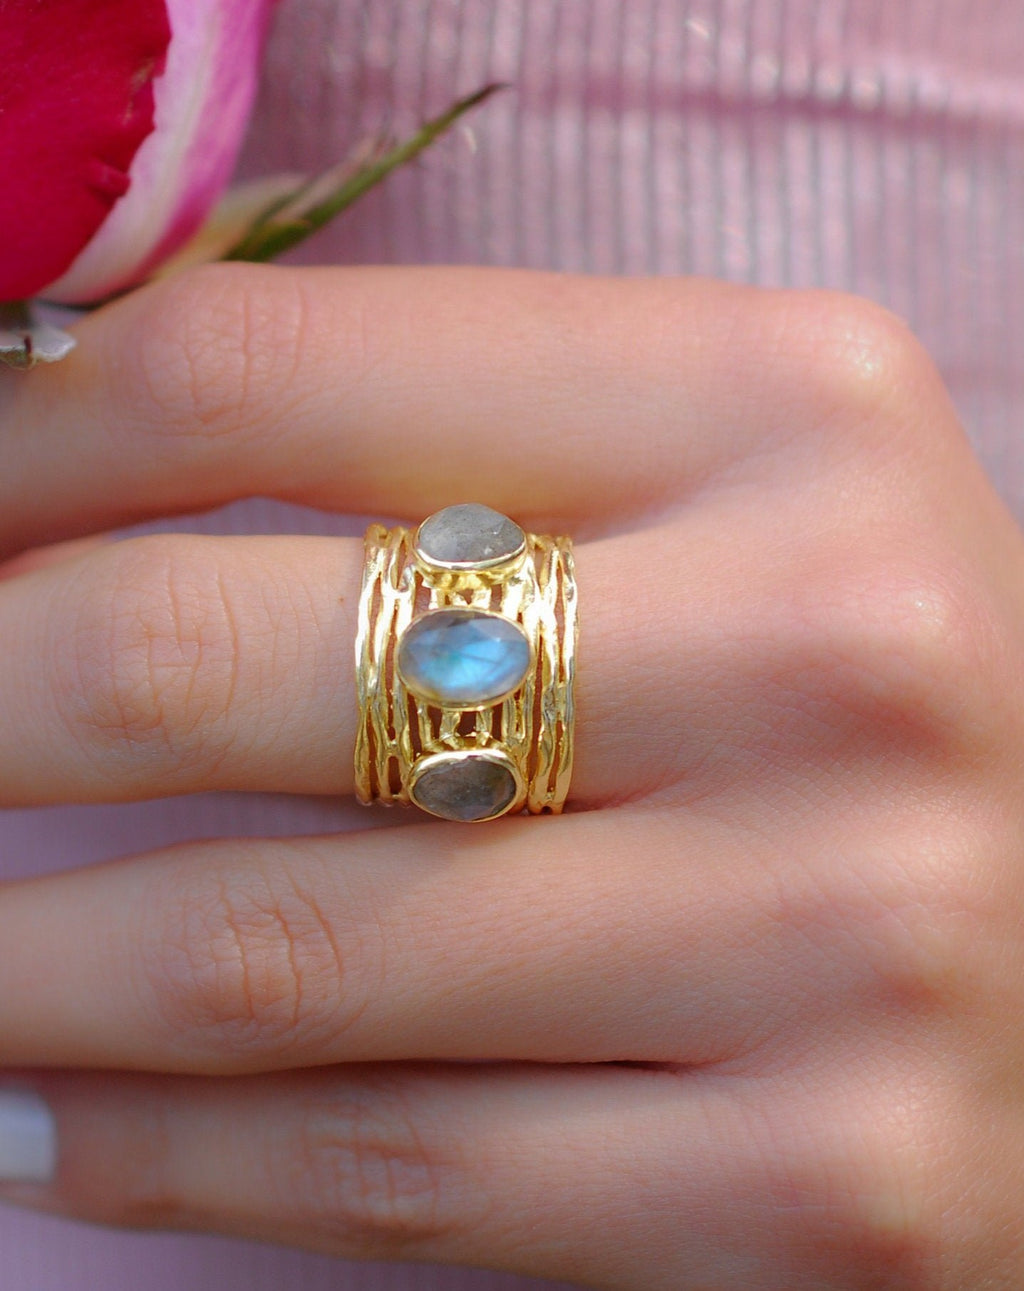 Labradorite Ring * 18k Gold Plated Ring * Statement Ring *Gemstone Ring *Labradorite *Bridal Ring *Organic Ring *Natural * BJR161